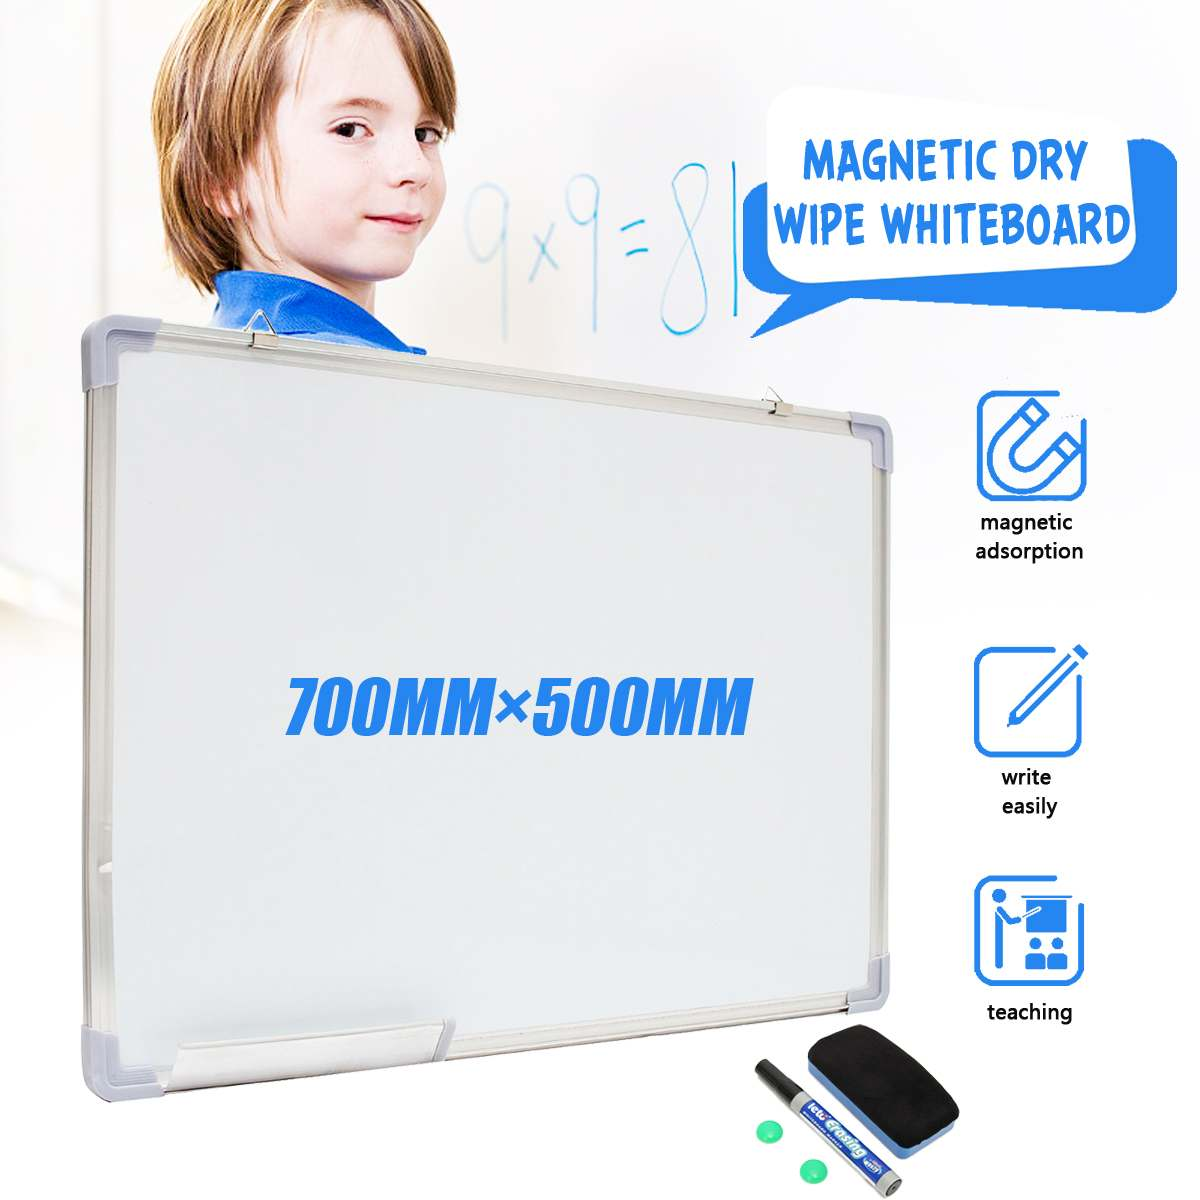 500x700MM Magnetic  Whiteboard Writing Board Double Side With Pen Erase Magnets Buttons For Office School